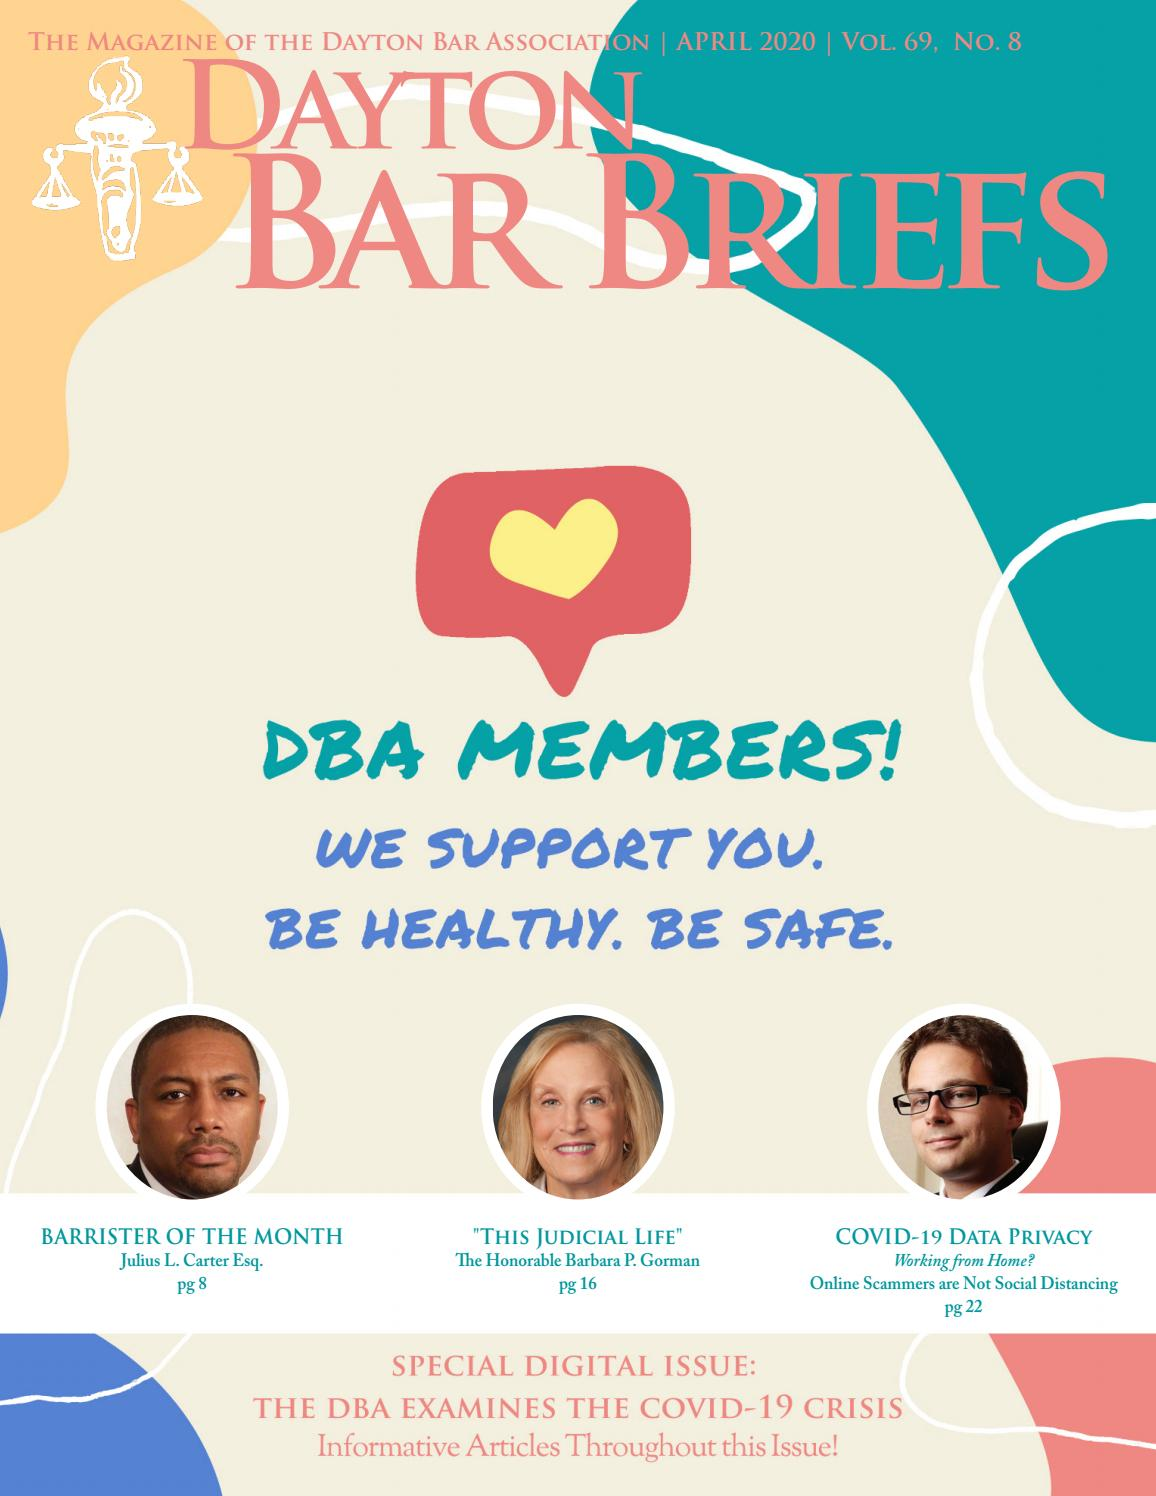 April 2020 Dayton Bar Briefs Magazine Digital Issue By Dayton Bar Association Issuu But anybody can say that. april 2020 dayton bar briefs magazine